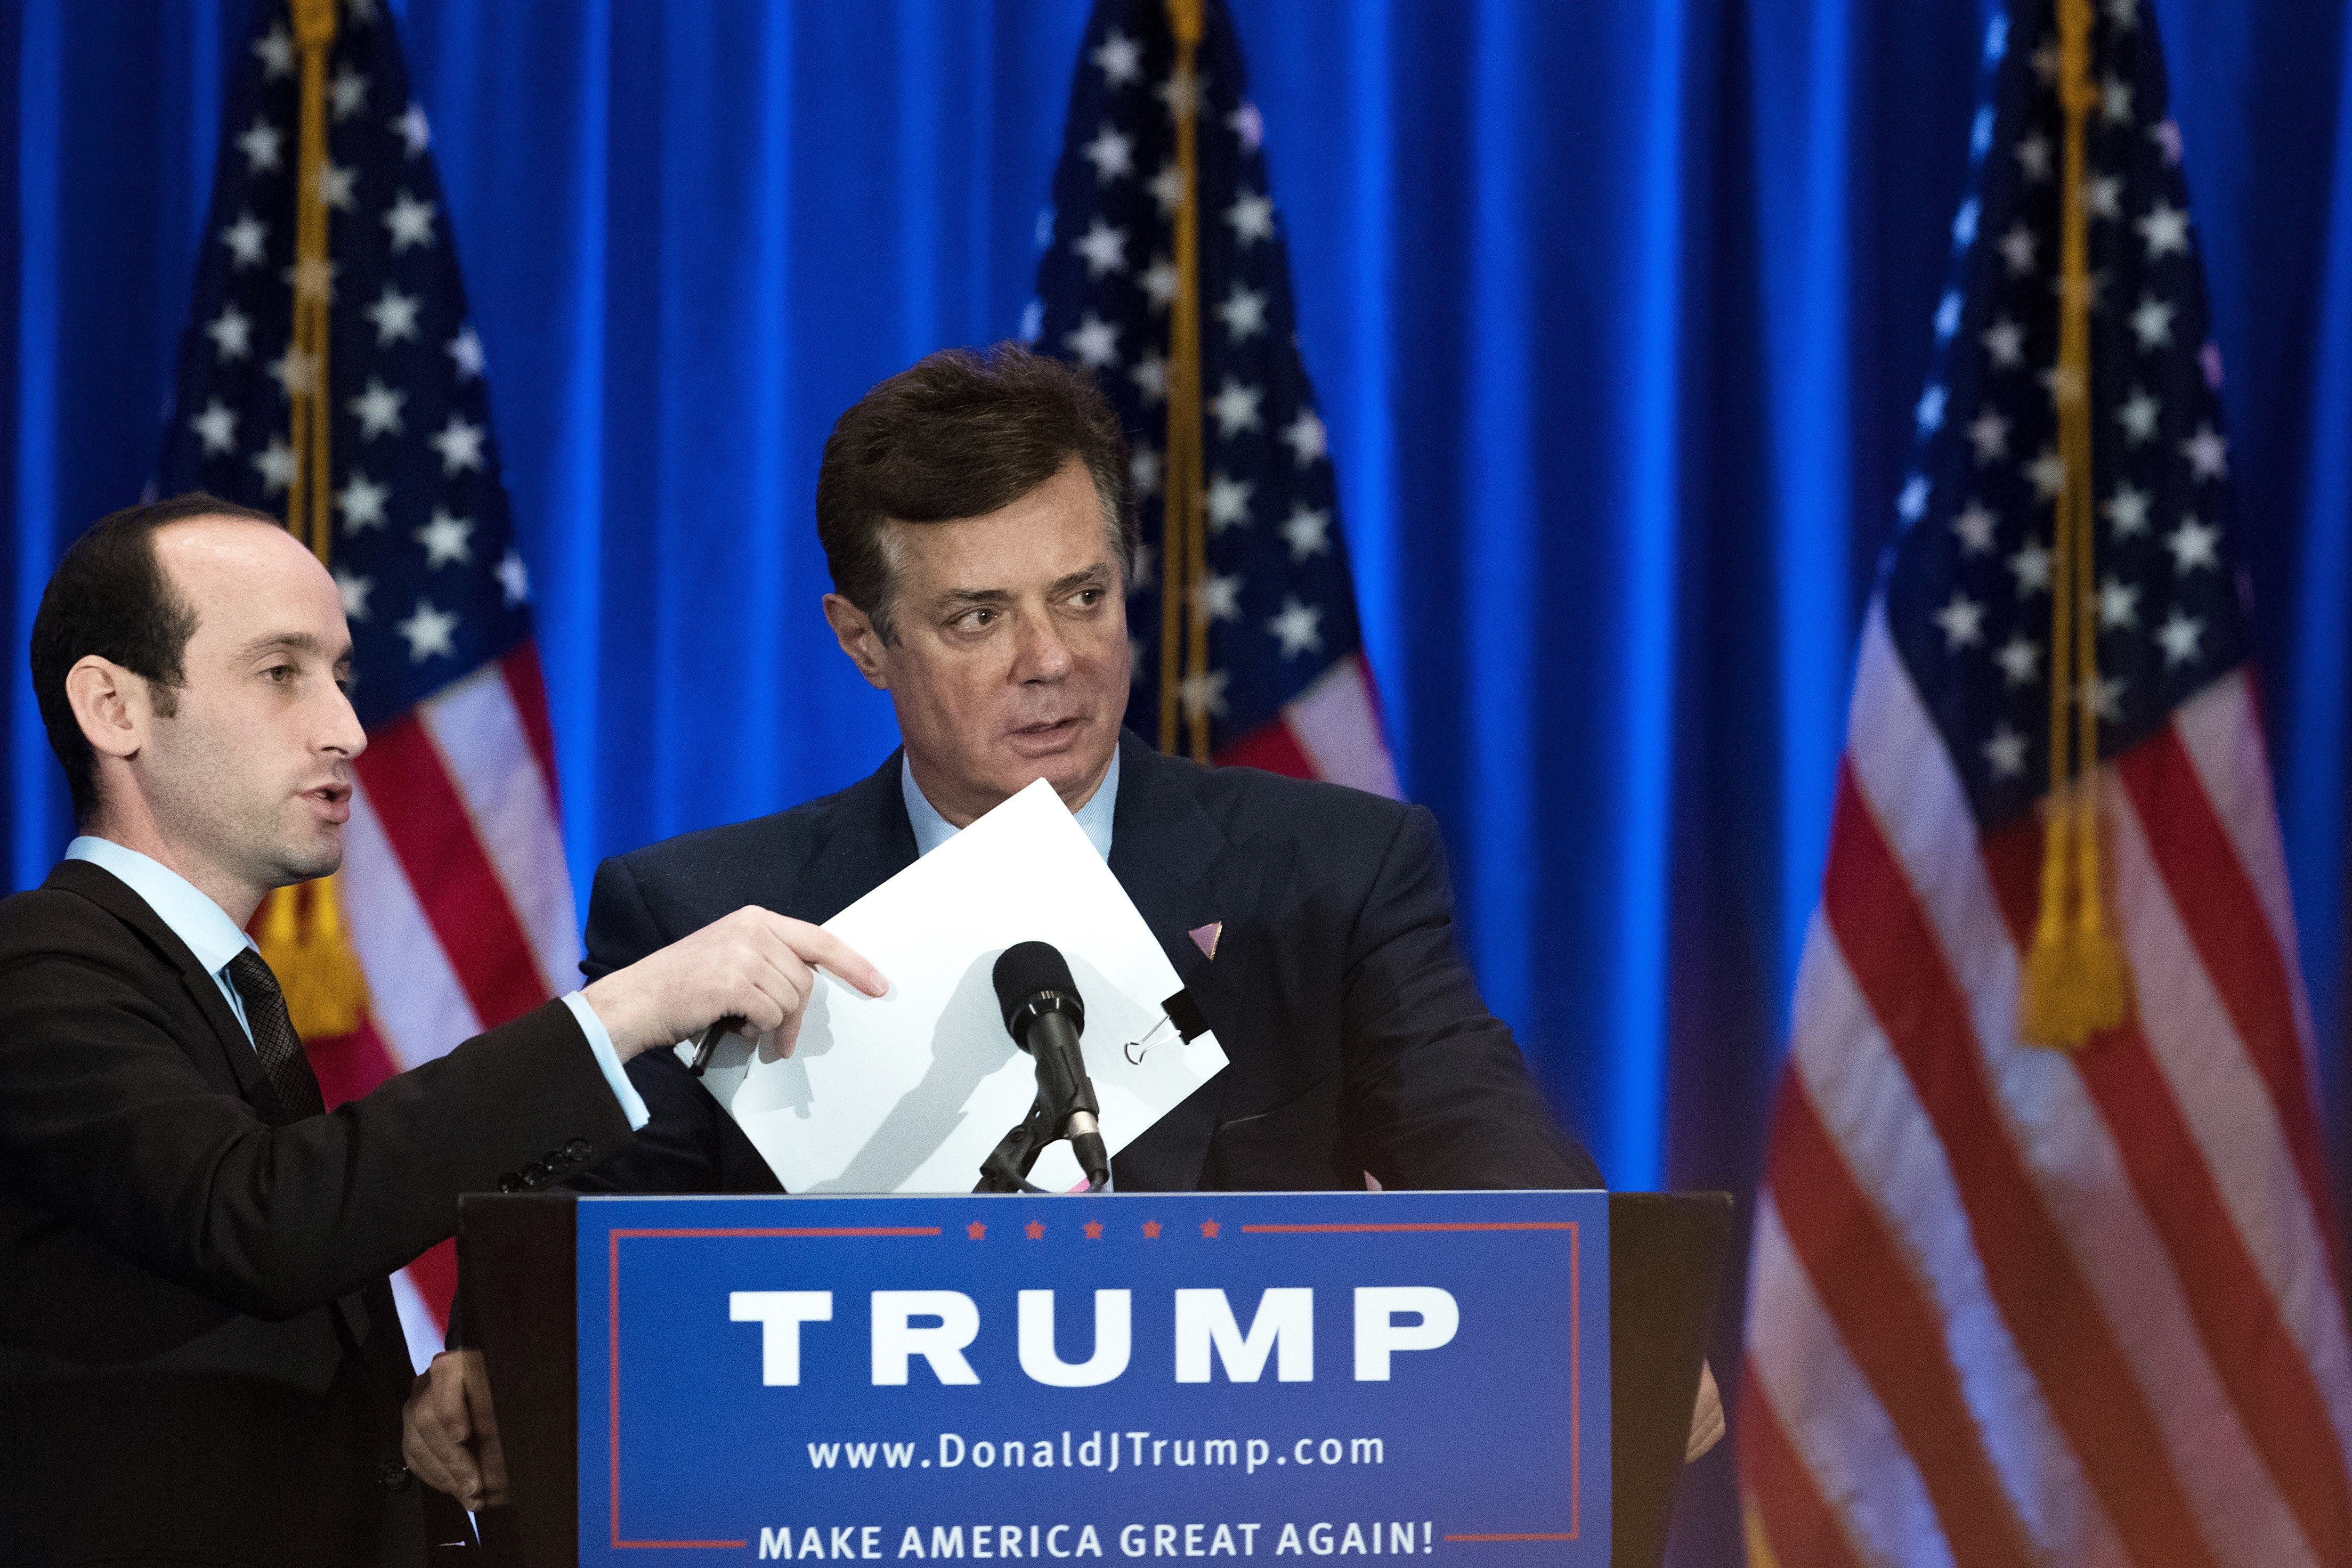 Paul Manafort, then chairman of the Trump campaign, at an event on June 22, 2016.